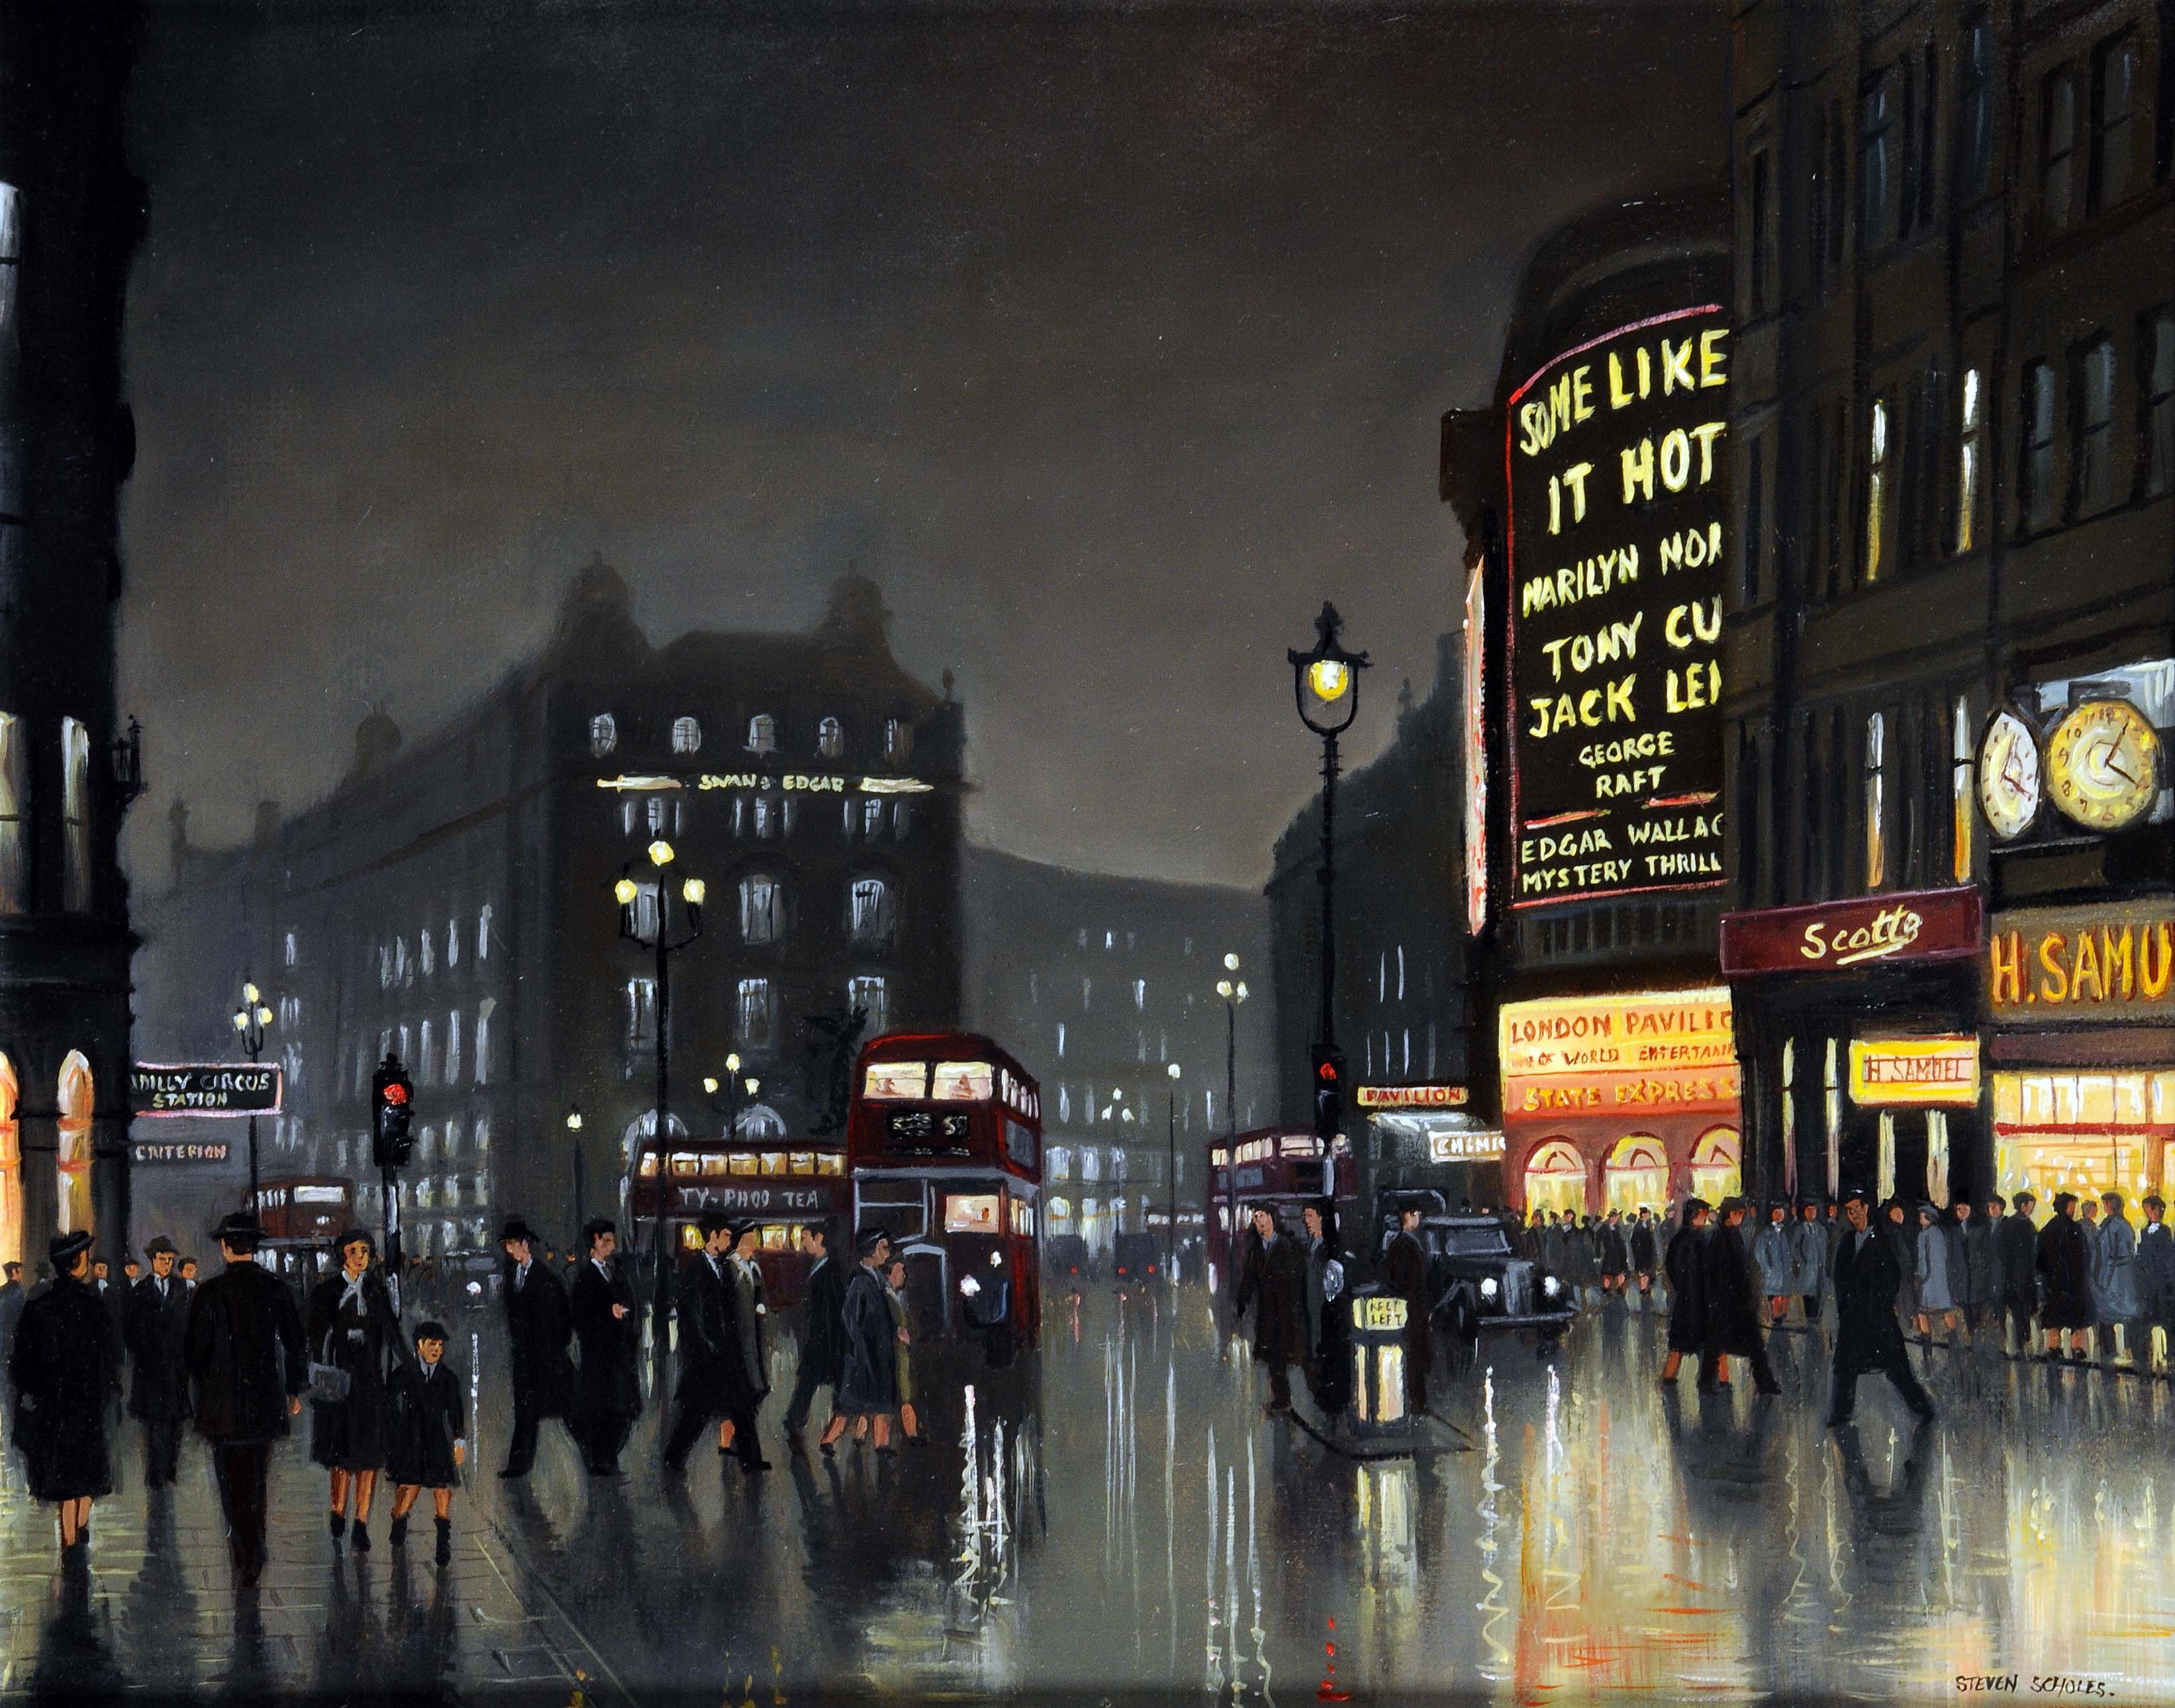 Art Auction - Lot 532 A busy London scene at night, titled 'Piccadilly Circus 1959', by STEVEN SCHOLES. Scholes is a contemporary Northern School artist. Up for auction 30th January.